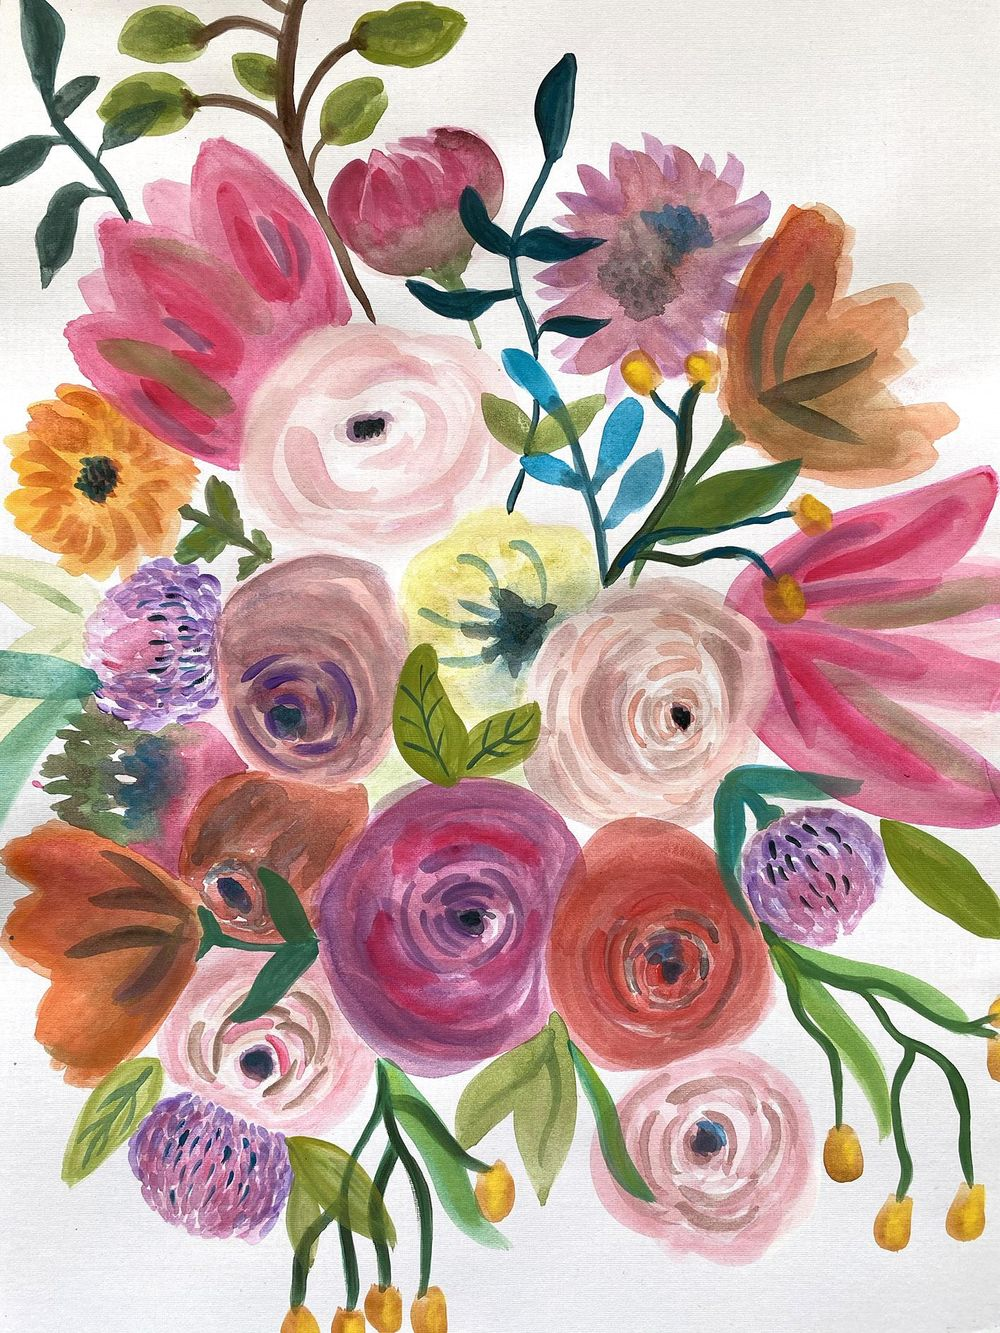 Floral happiness - image 1 - student project